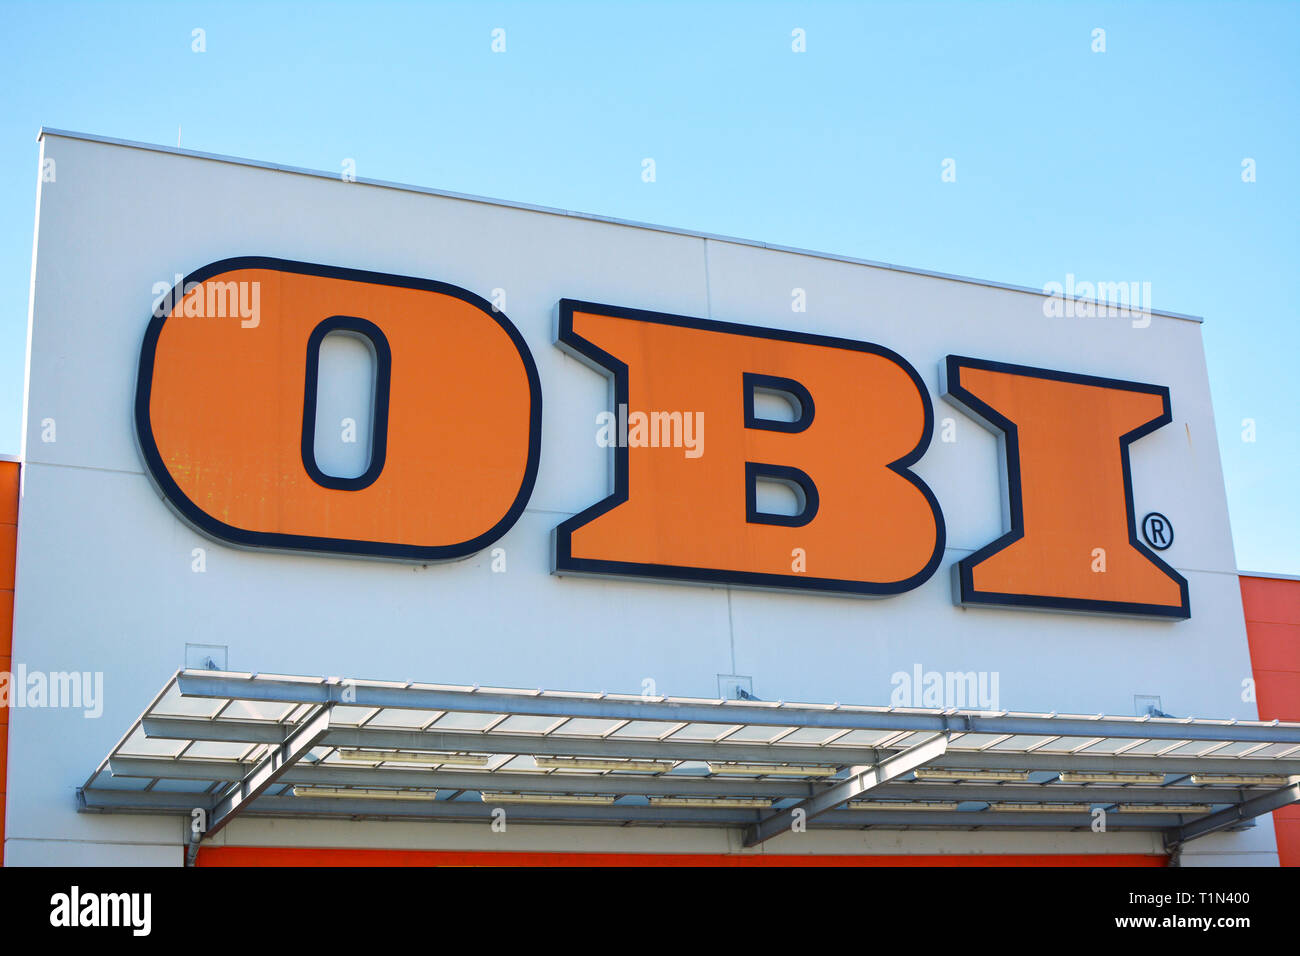 Store front with orange logo of German multinational home improvement and gardening supplies retailing company called OBI in Heidelberg, germany - Stock Image